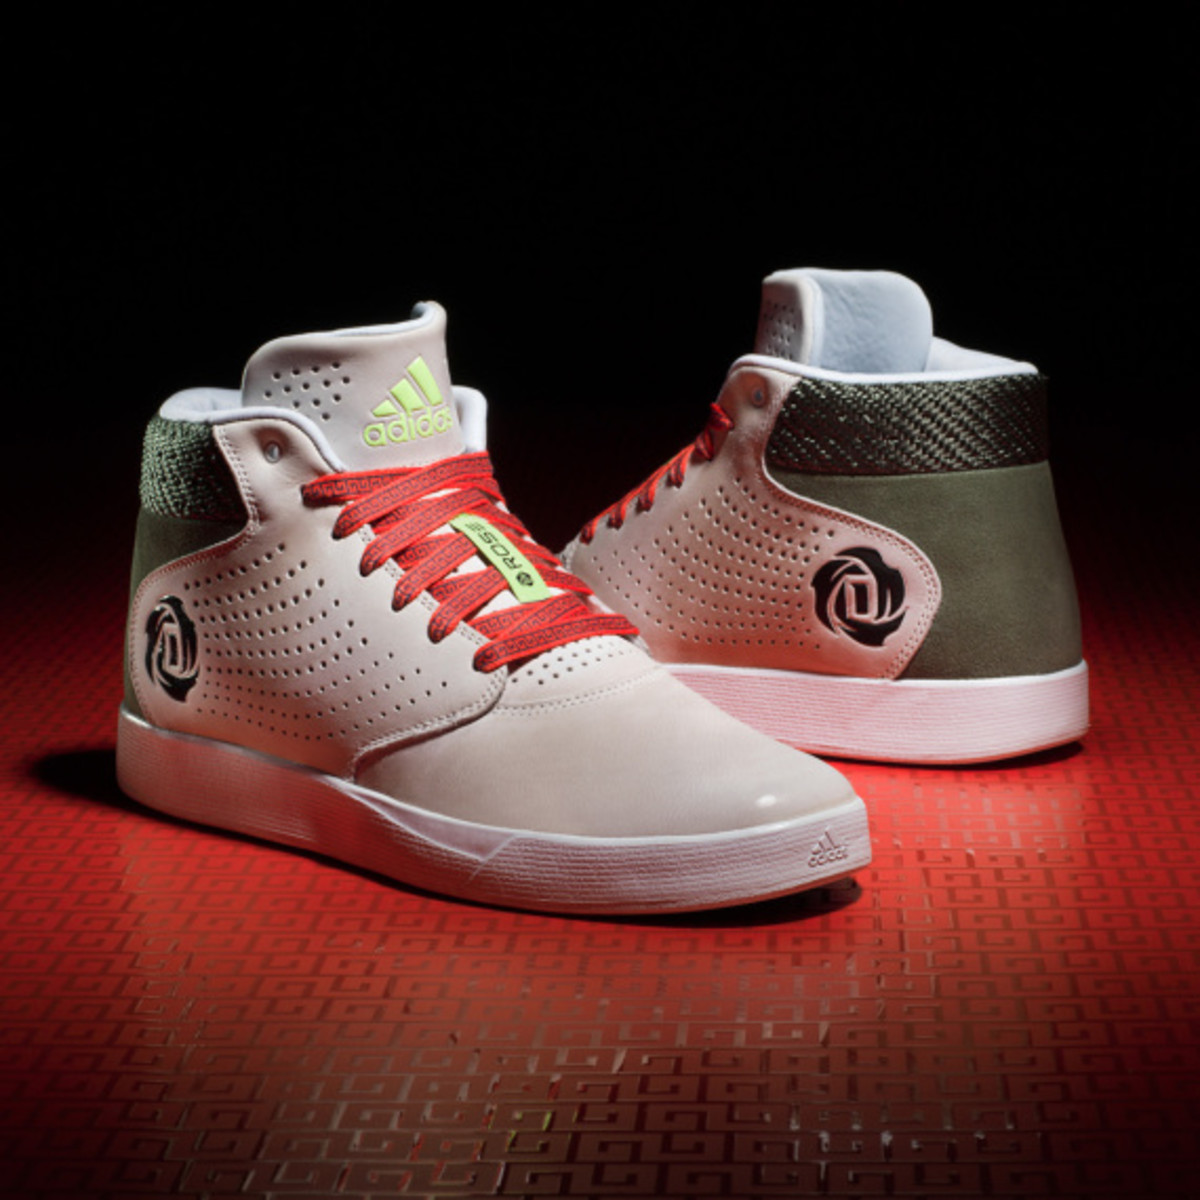 adidas-basketball-year-of-the-goat-collection-06